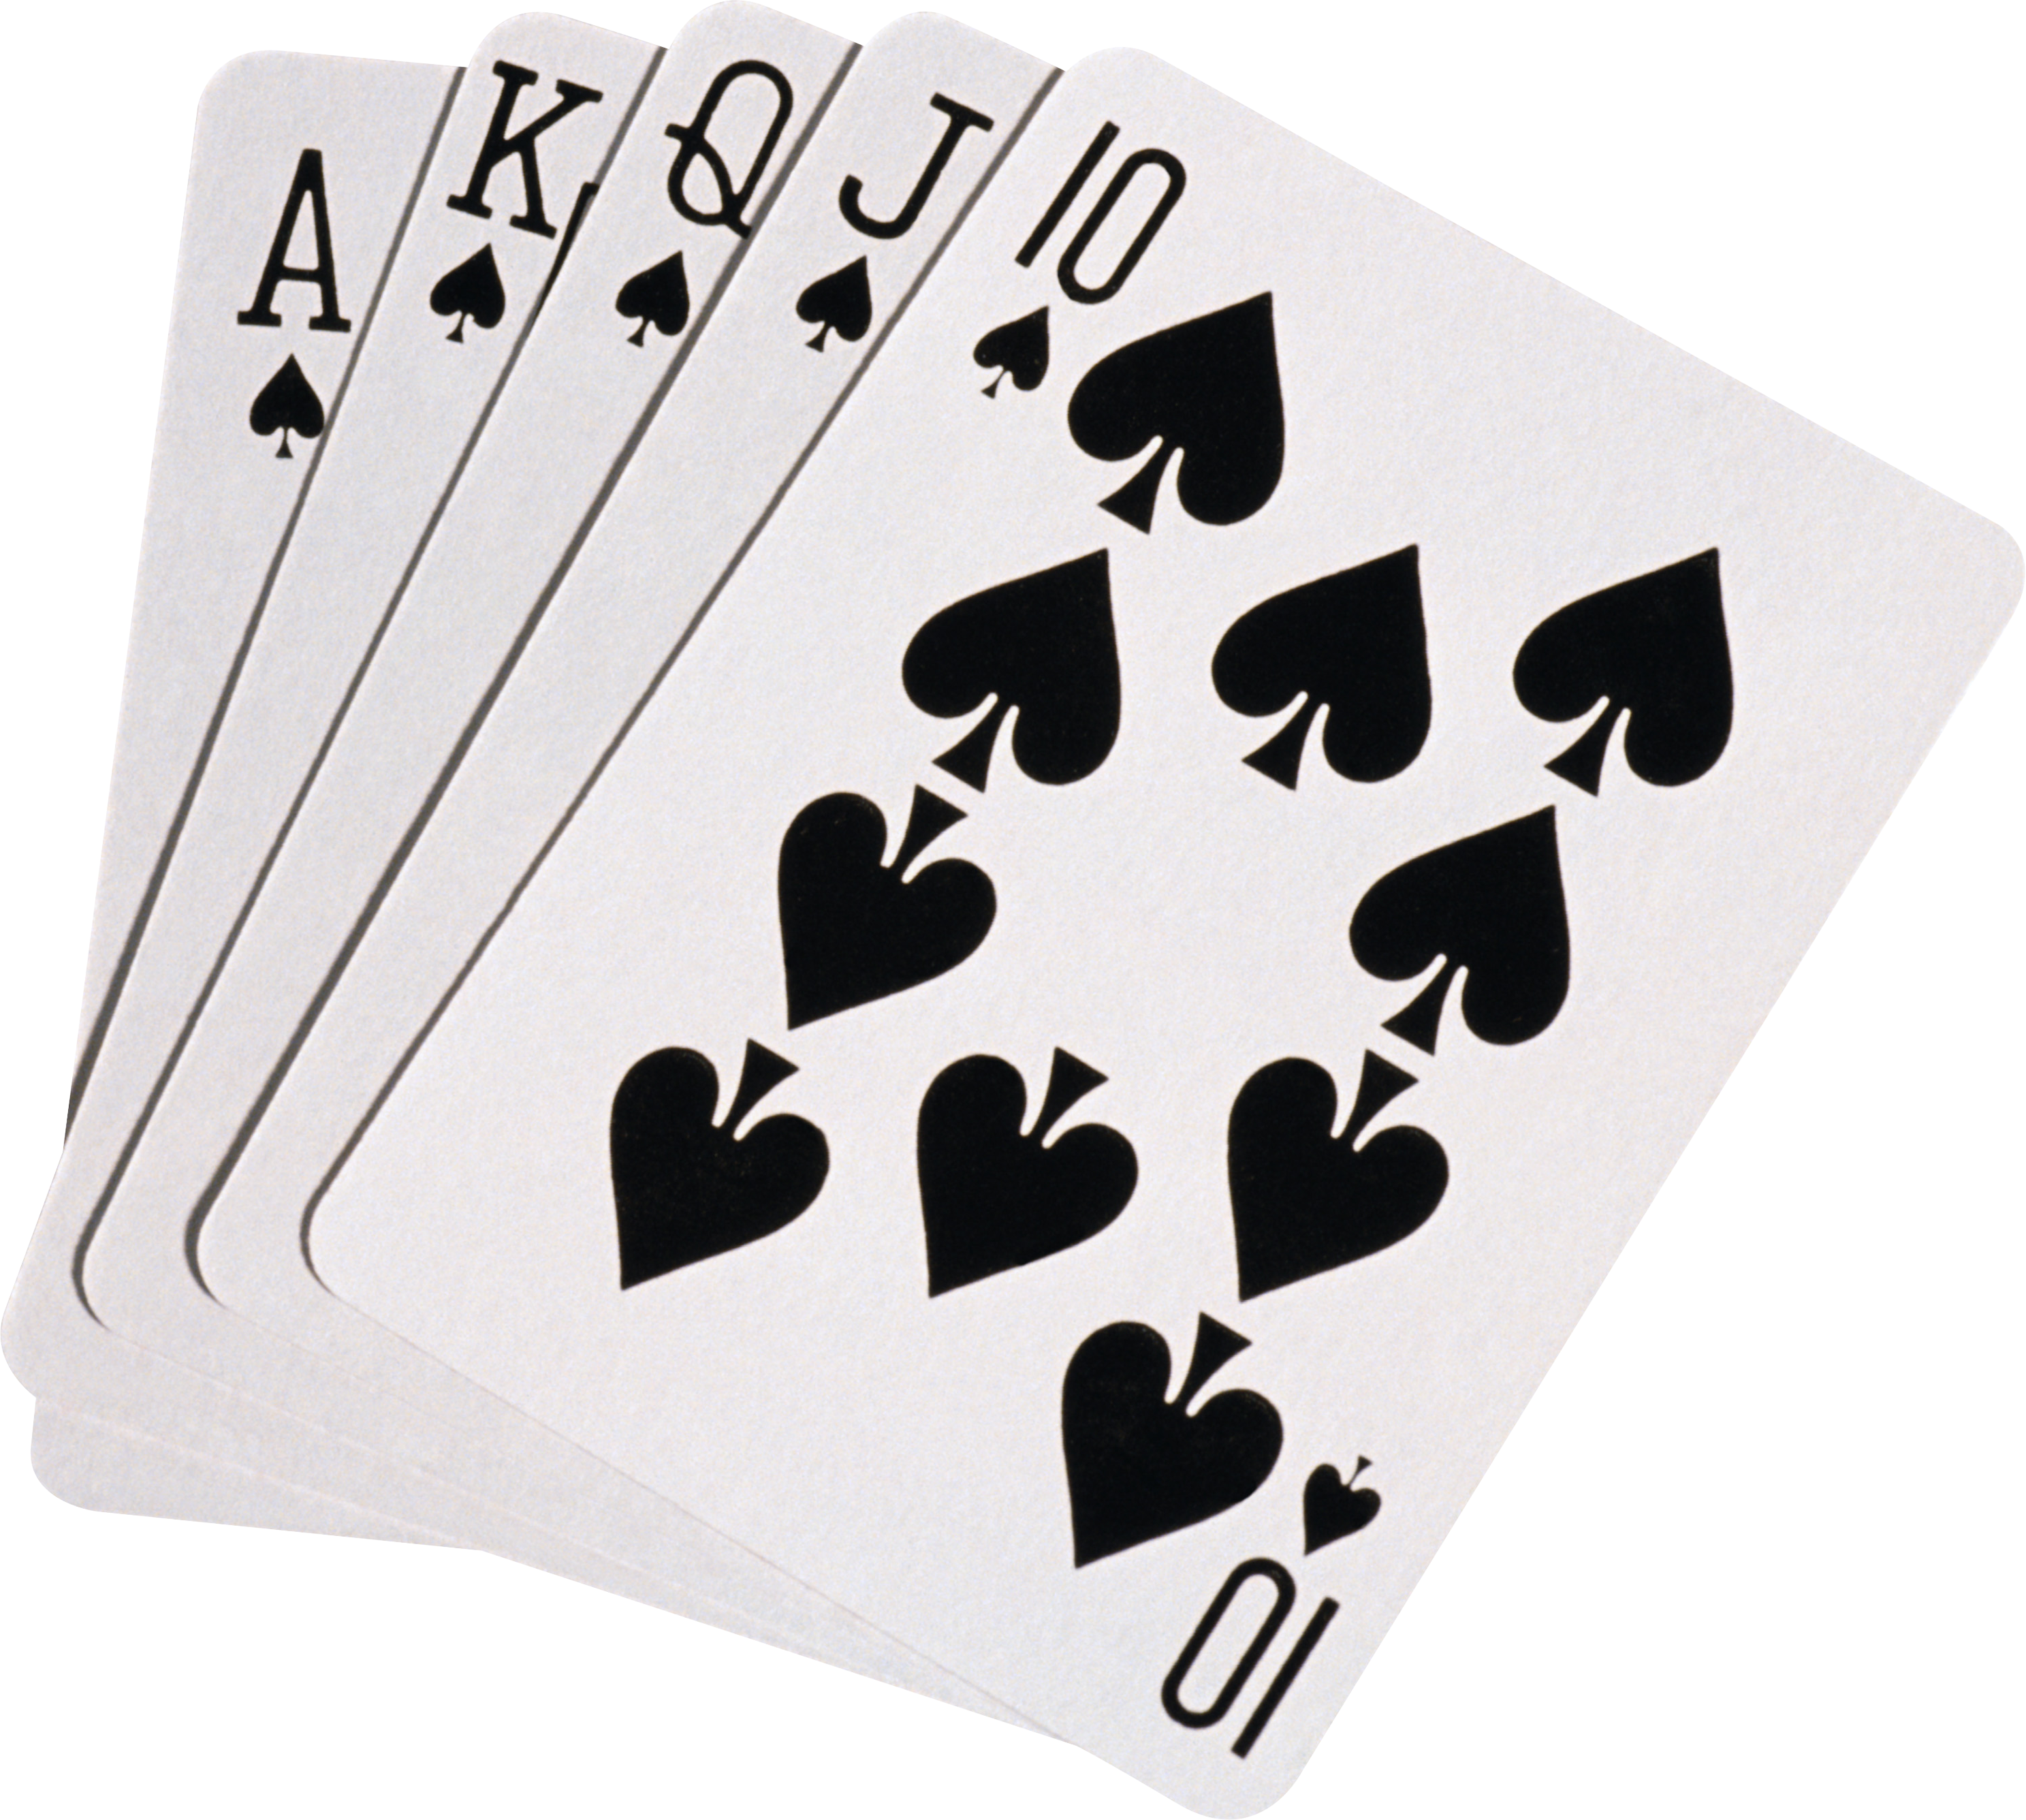 Transparent images pluspng playing. Cards .png png picture